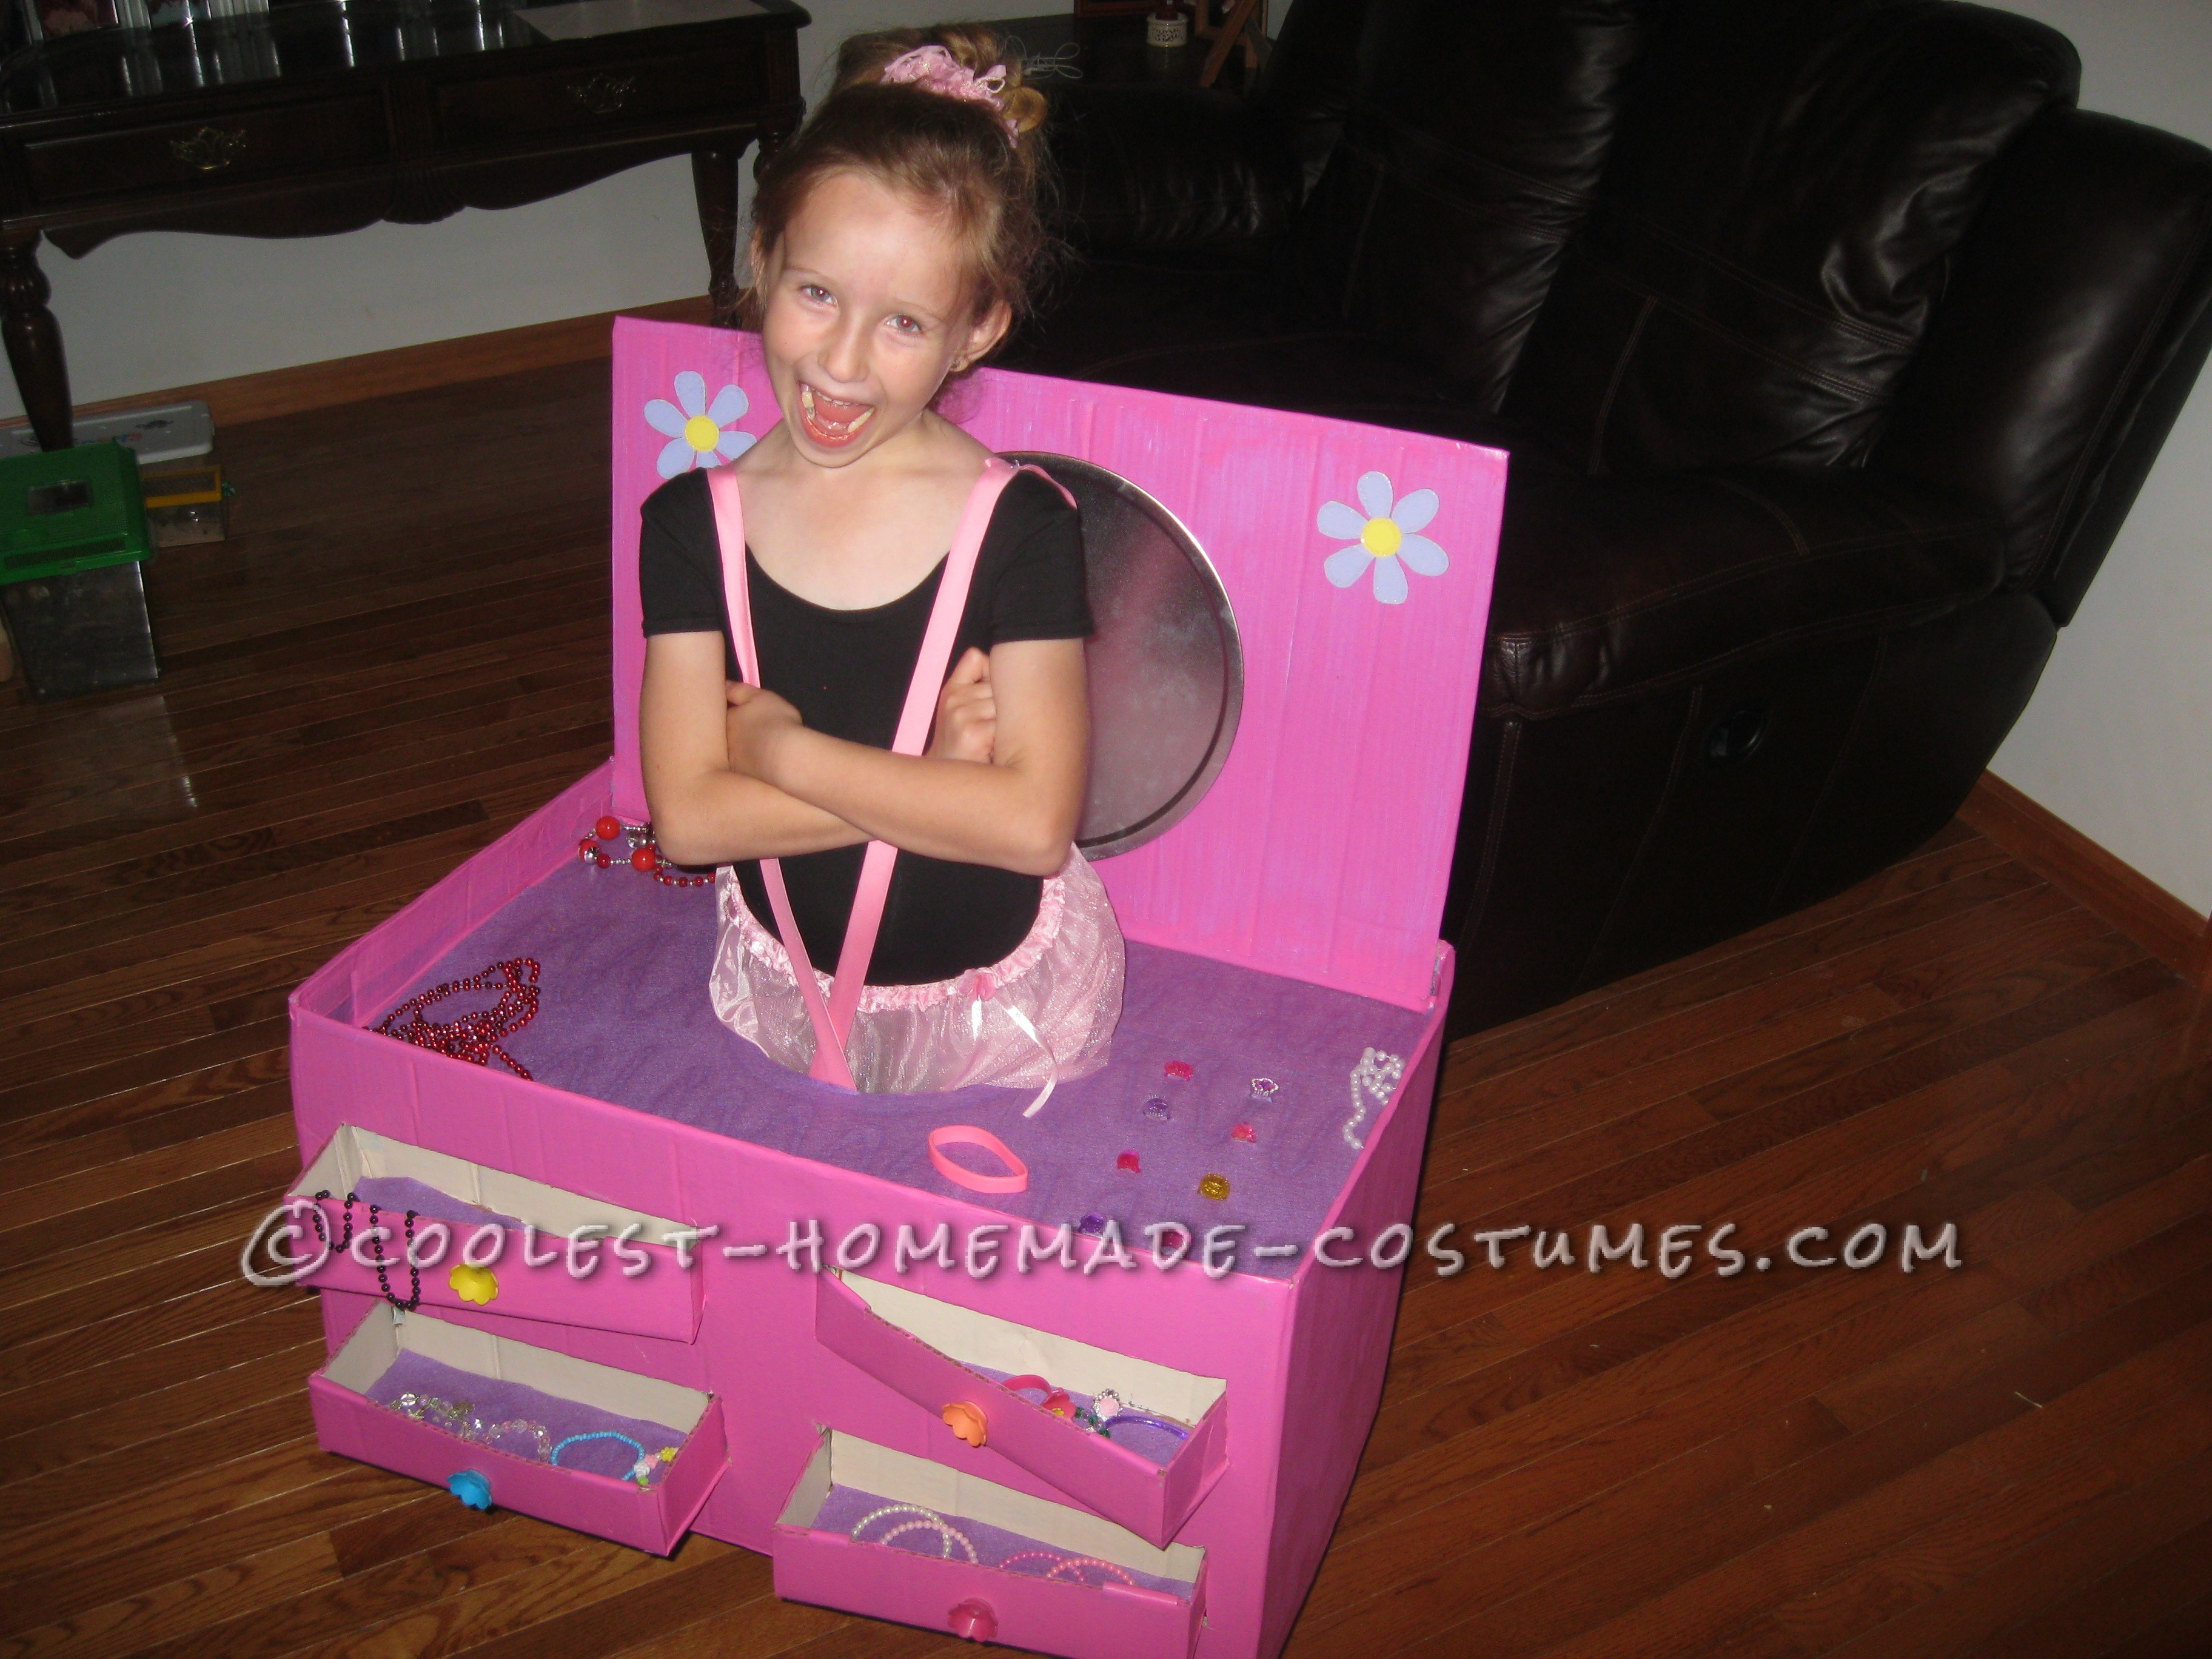 Beautiful Ballerina in a Jewelry Box Costume